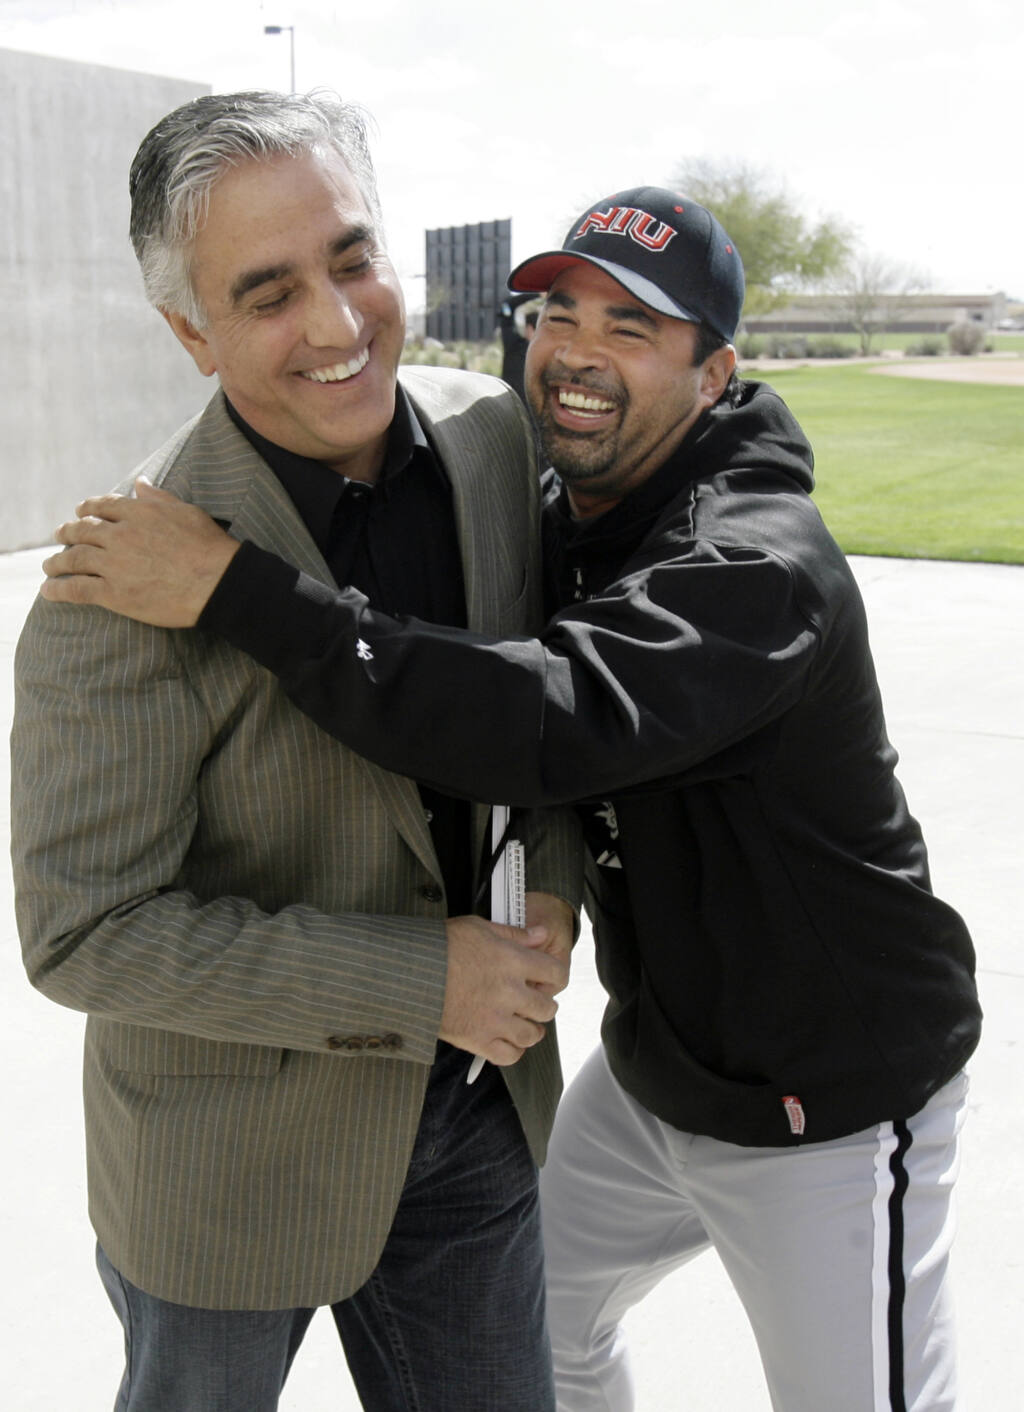 Then-Chicago White Sox manager Ozzie Guillen jokes with ESPN's Pedro Gomez, left,  after a news conference during spring training on Saturday, Feb. 16, 2008, in Tucson, Arizona. (M. Spencer Green / ASSOCIATED PRESS)